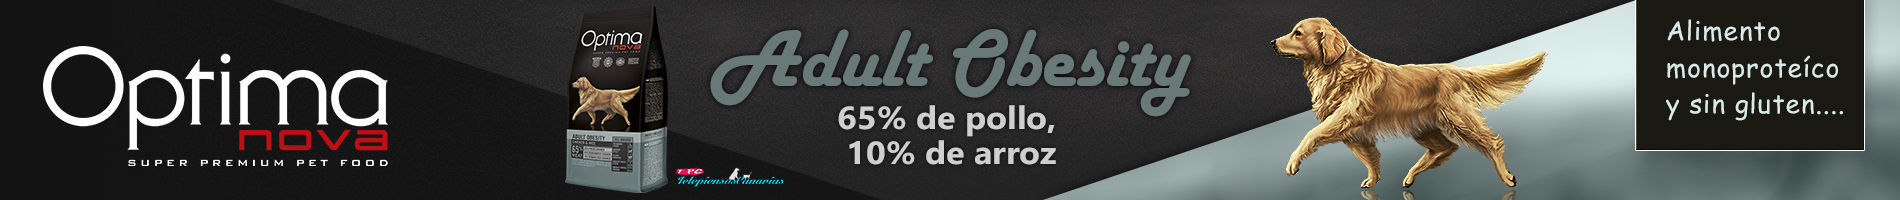 Optima nova adult obesity, con 65% pollo, 10% arroz y monoproteico